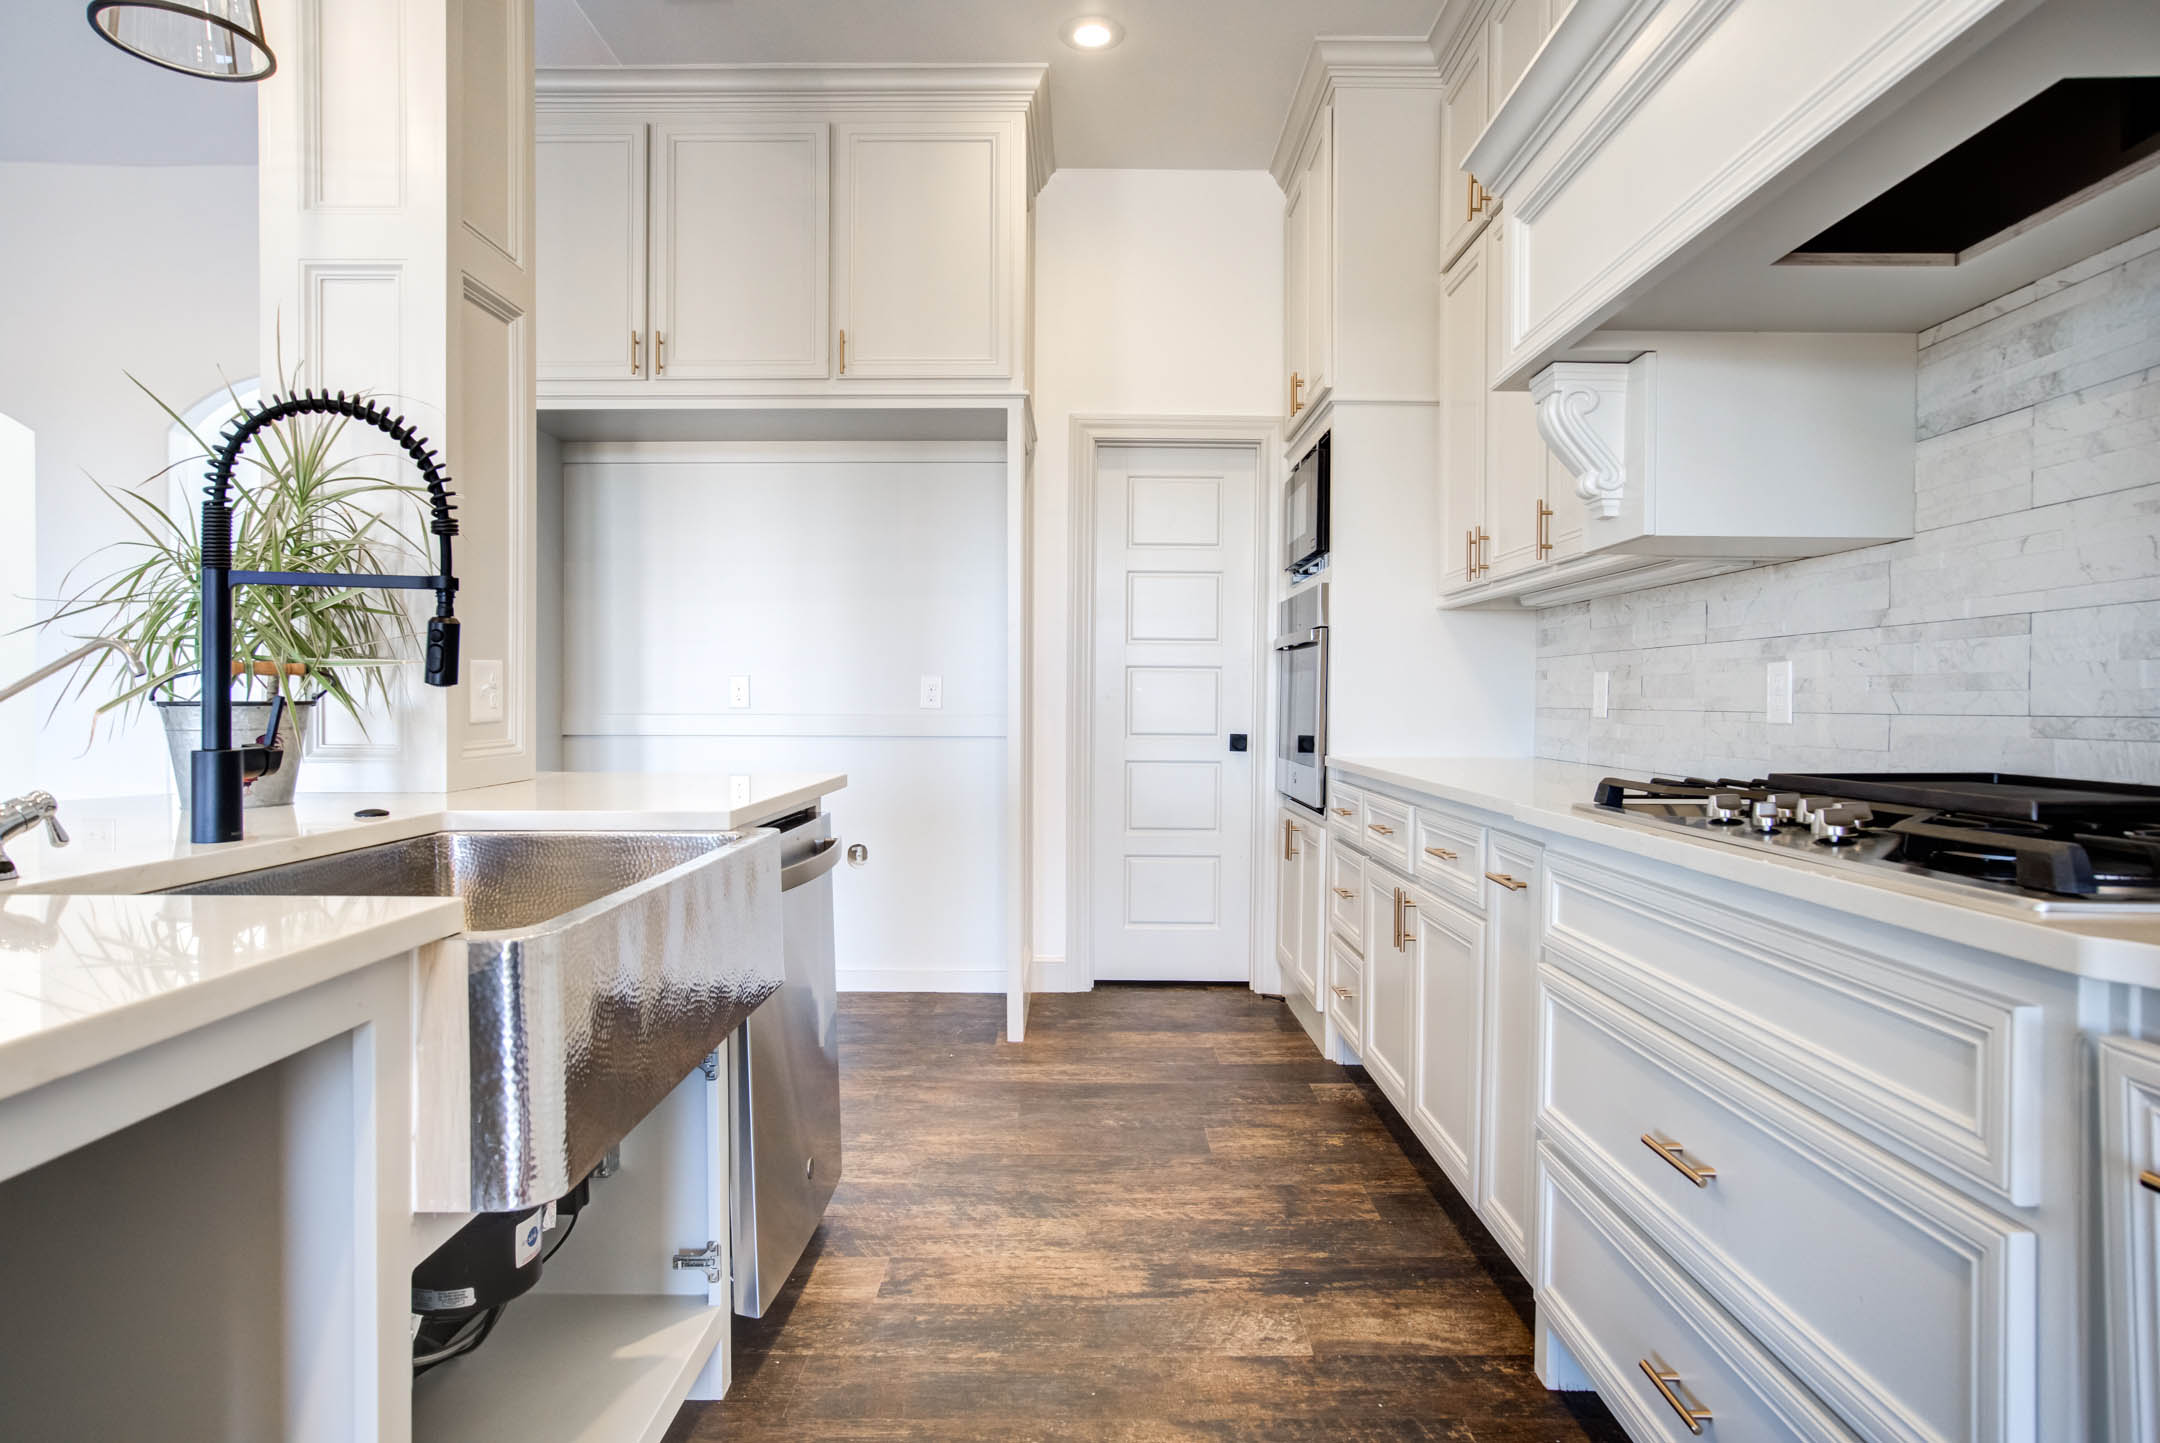 Spacious kitchen in new home for sale near Lubbock, Texas.